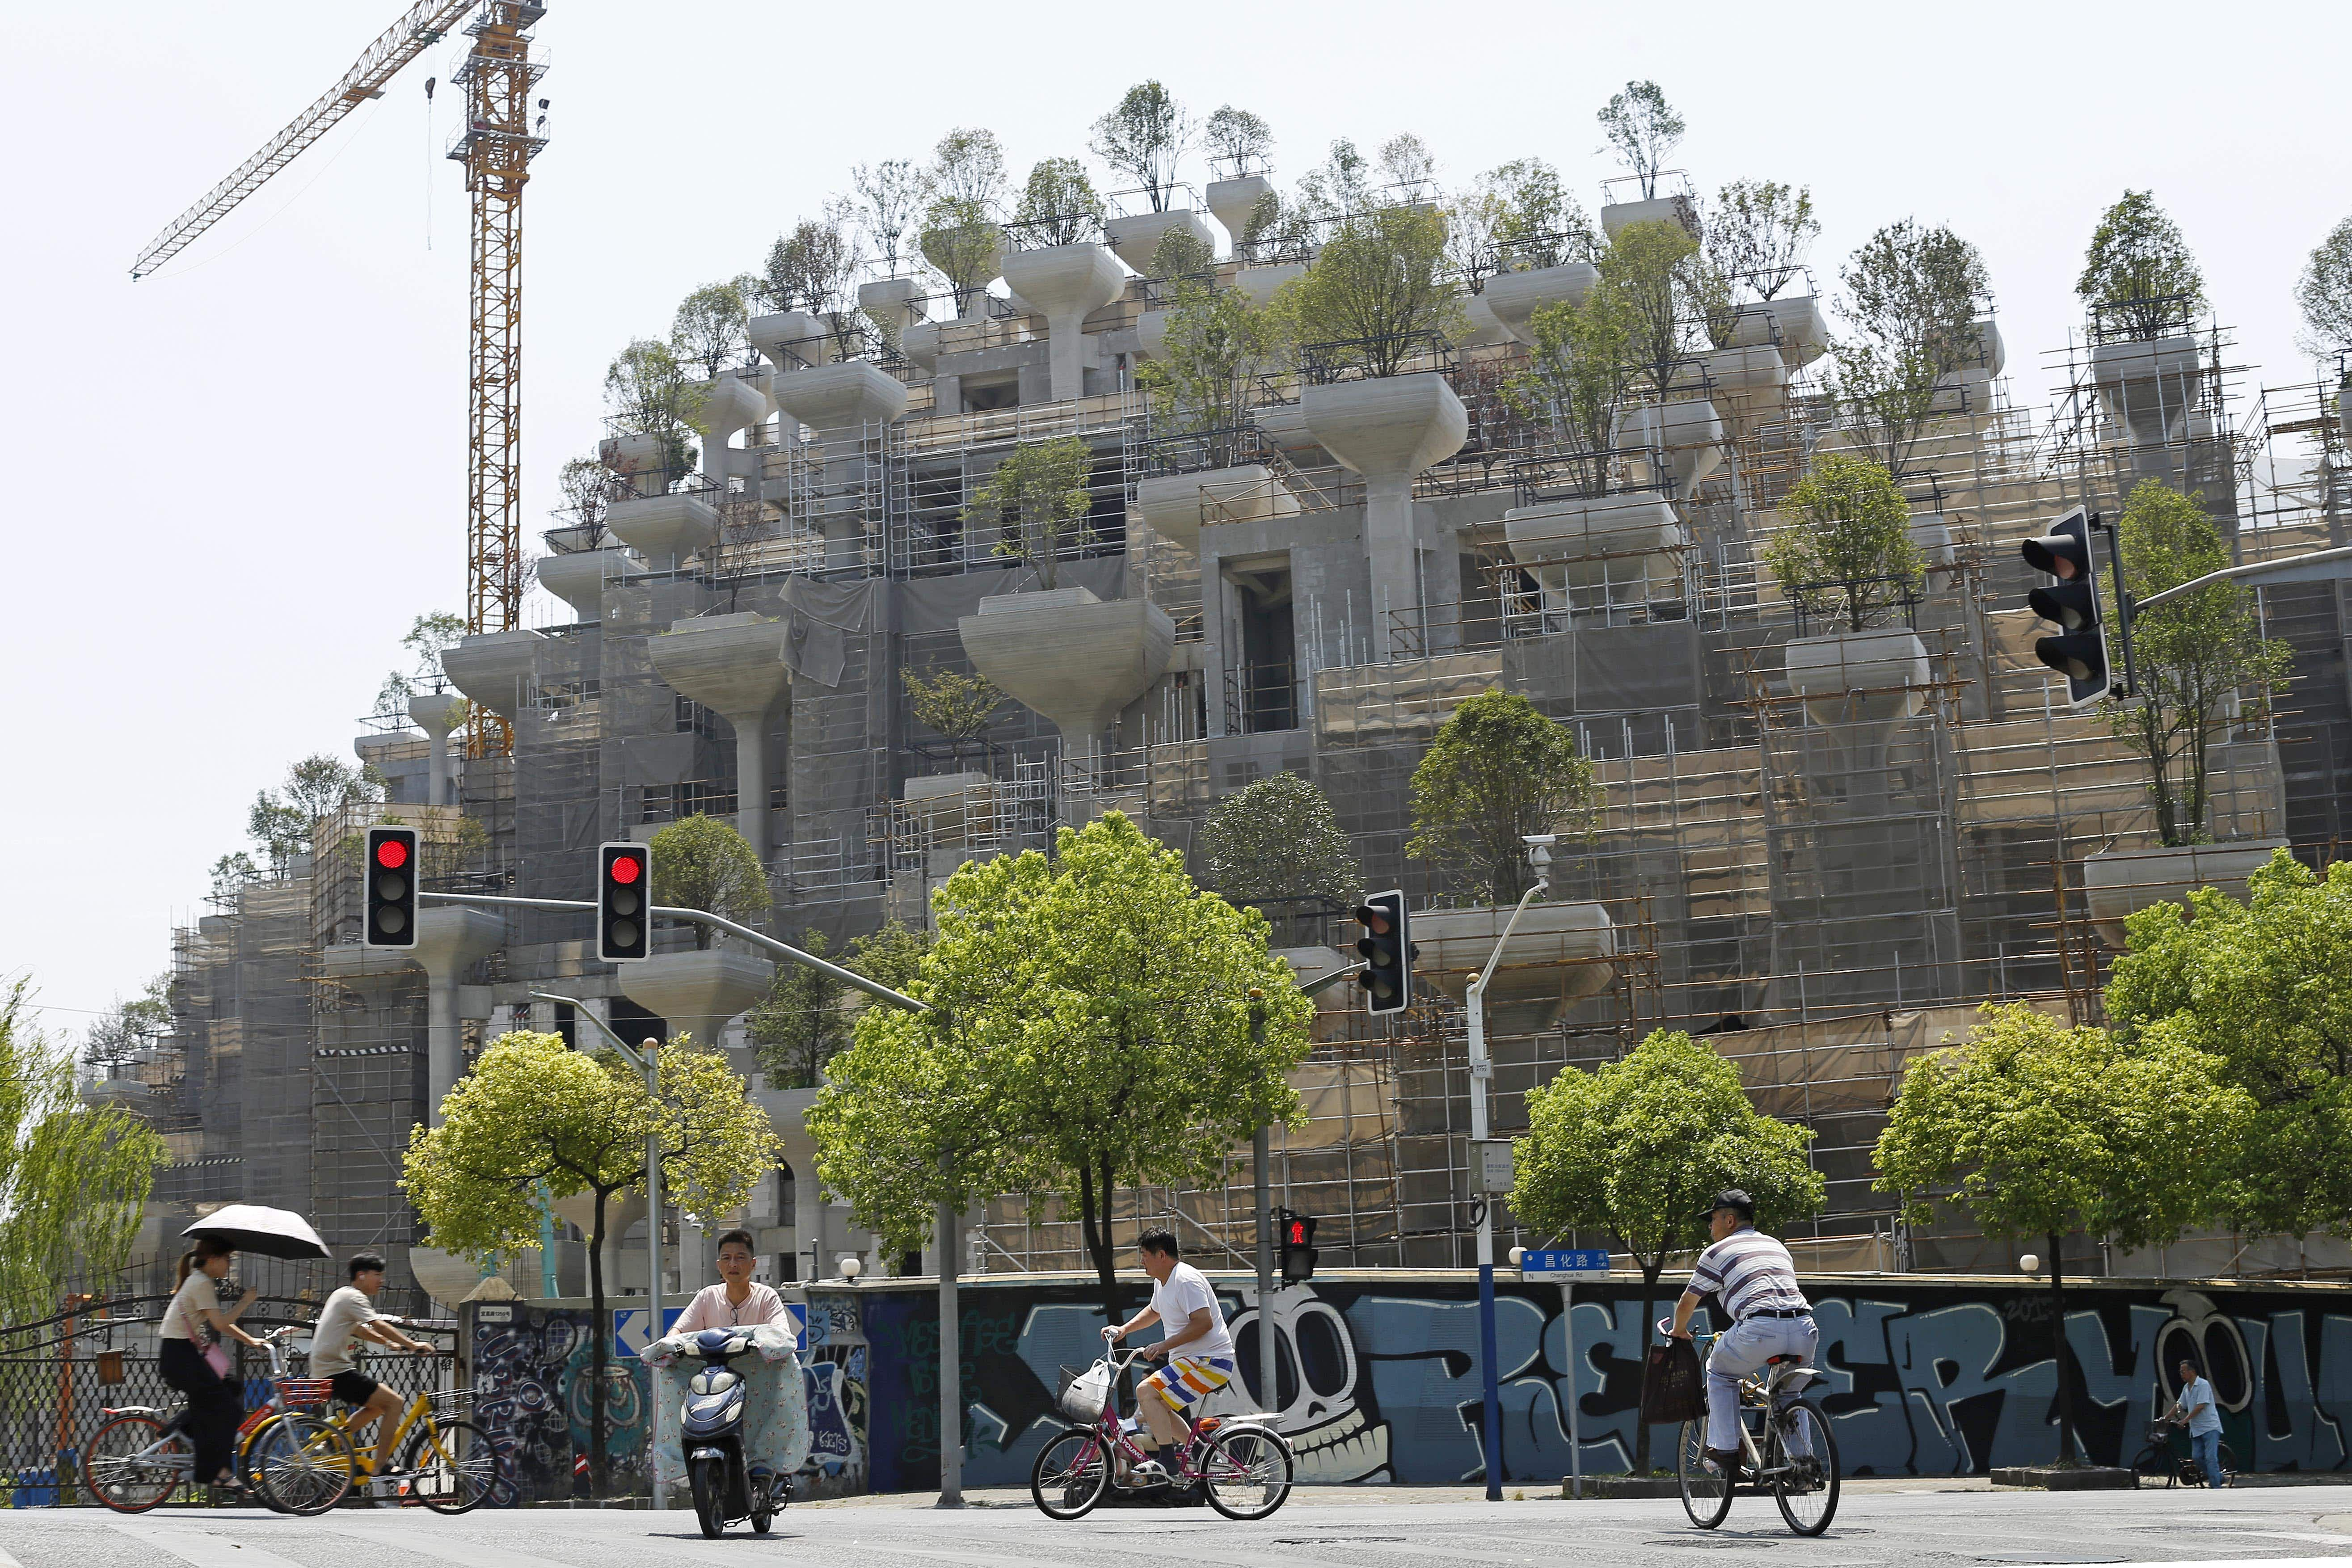 This amazing tree-covered building under construction in Shanghai is already attracting attention